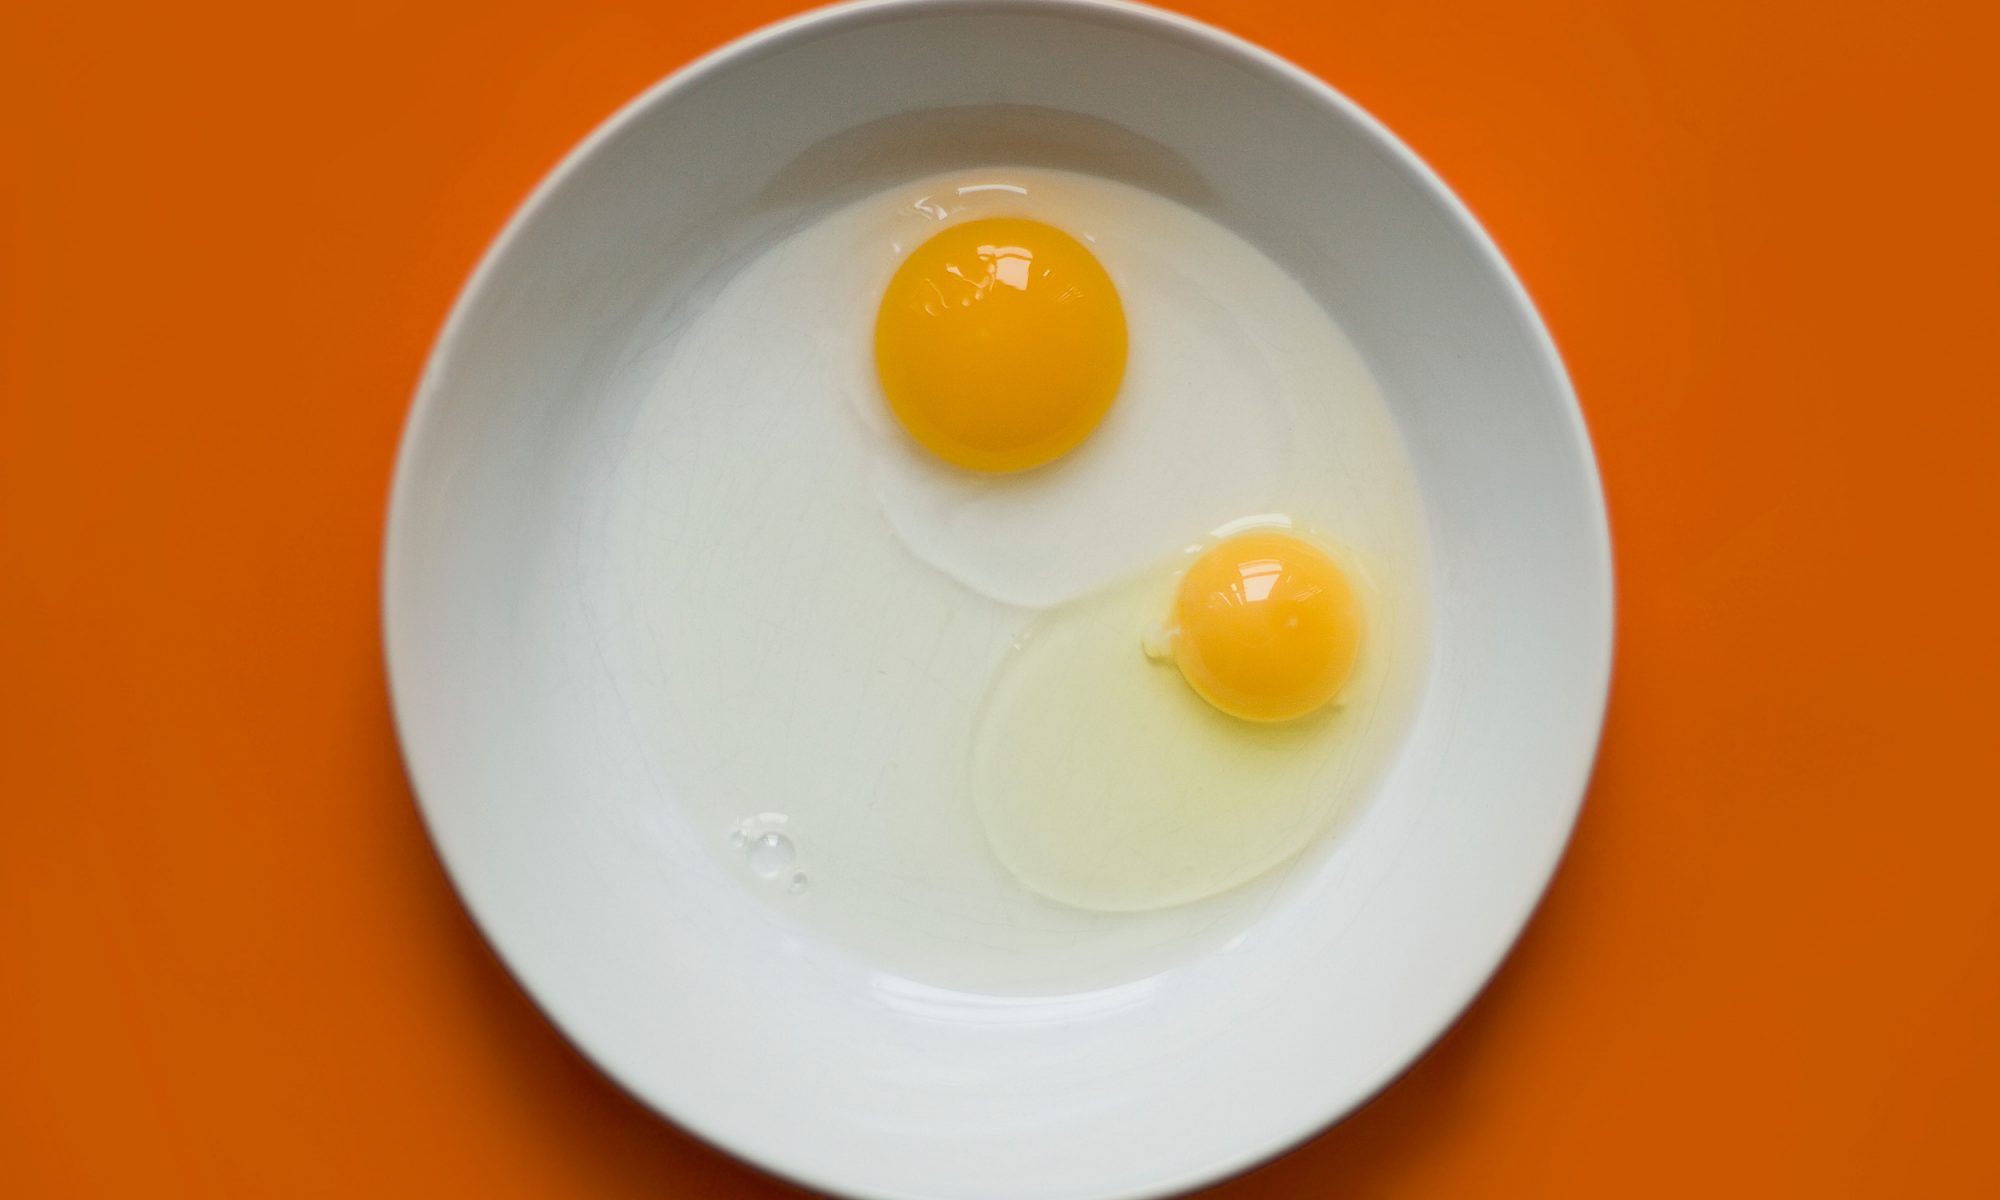 EC: The World's Oldest Woman Eats Raw Eggs Every Day